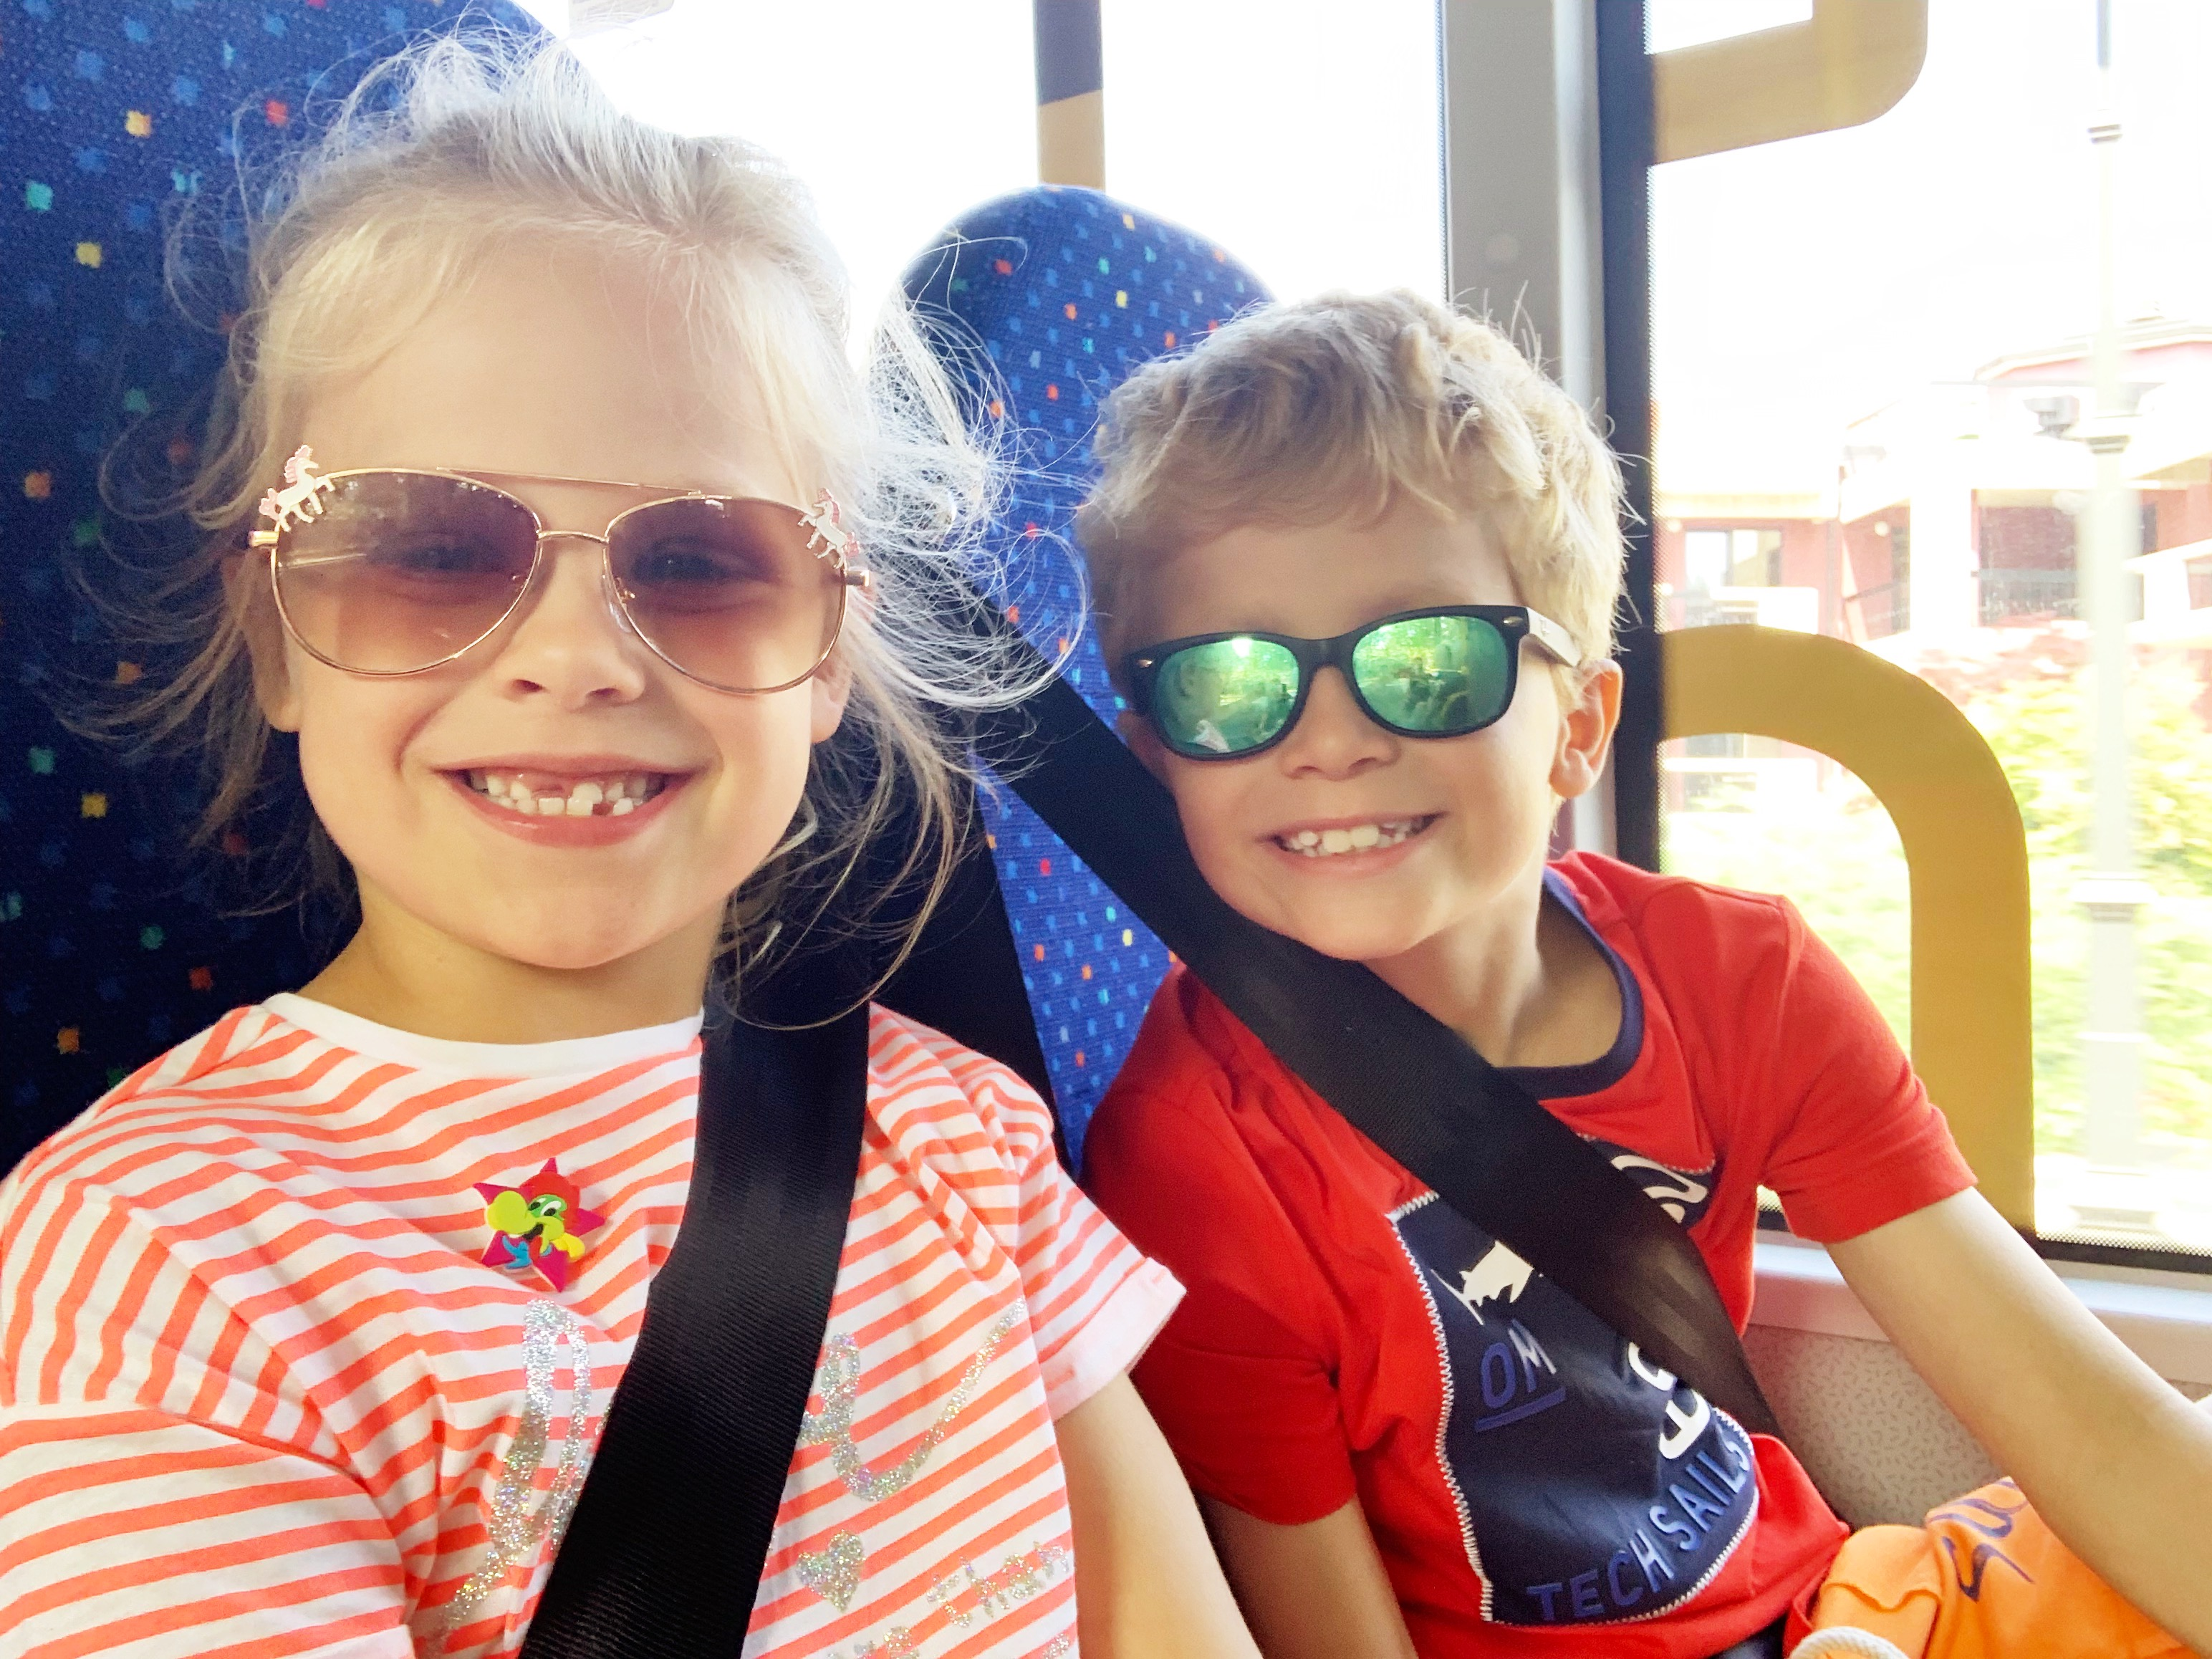 2 children smile for the camera on a bus in Italy